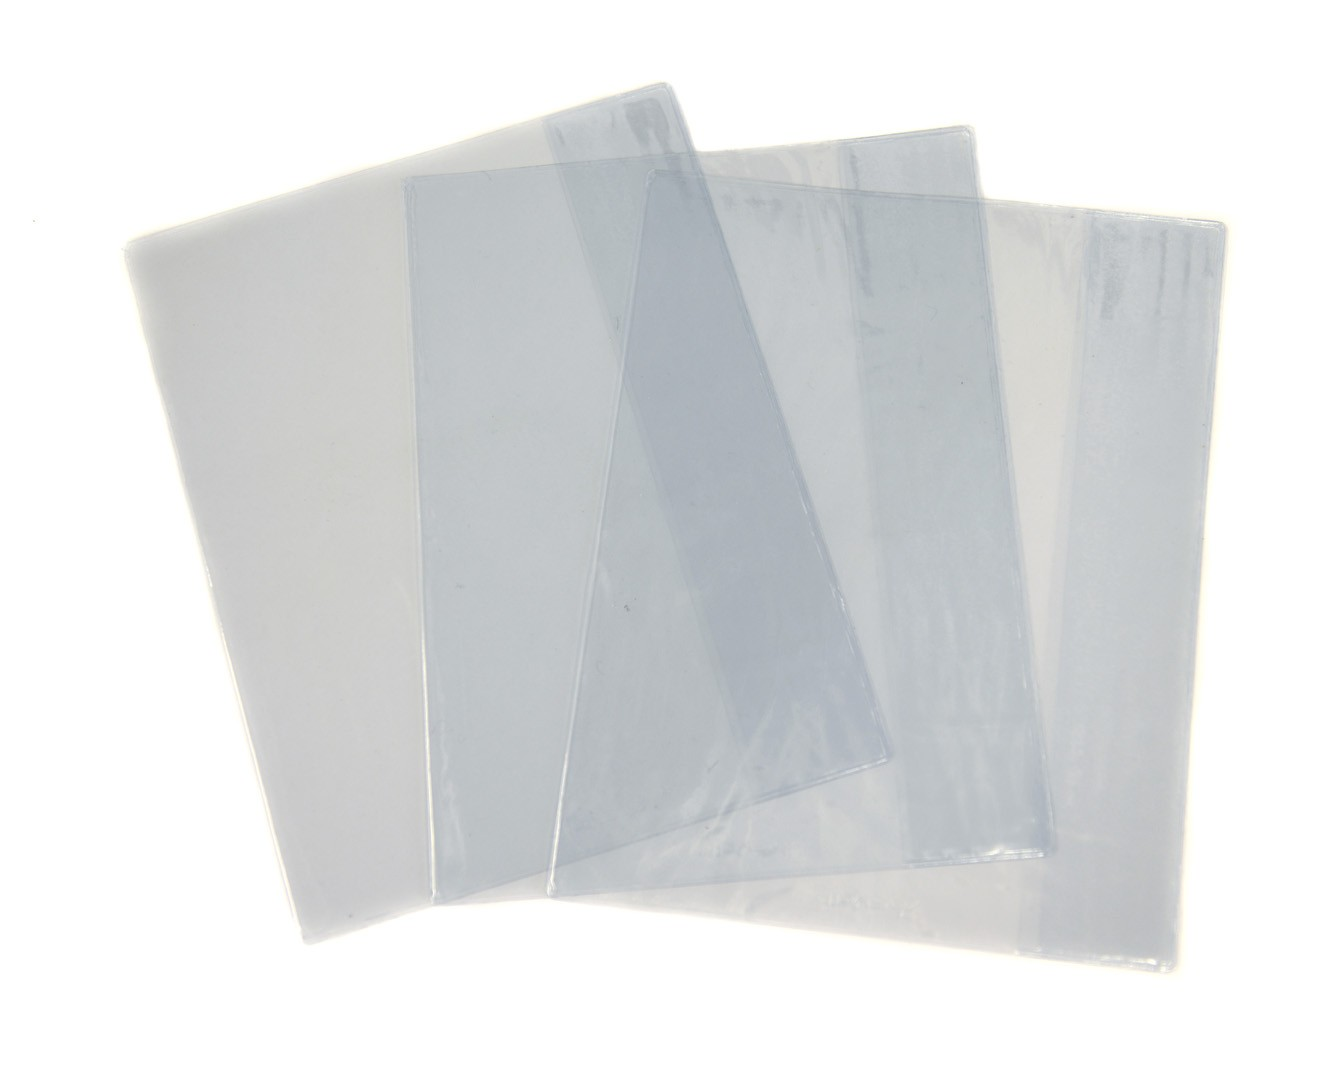 Exercise Book Cover - Clear 3 Pack